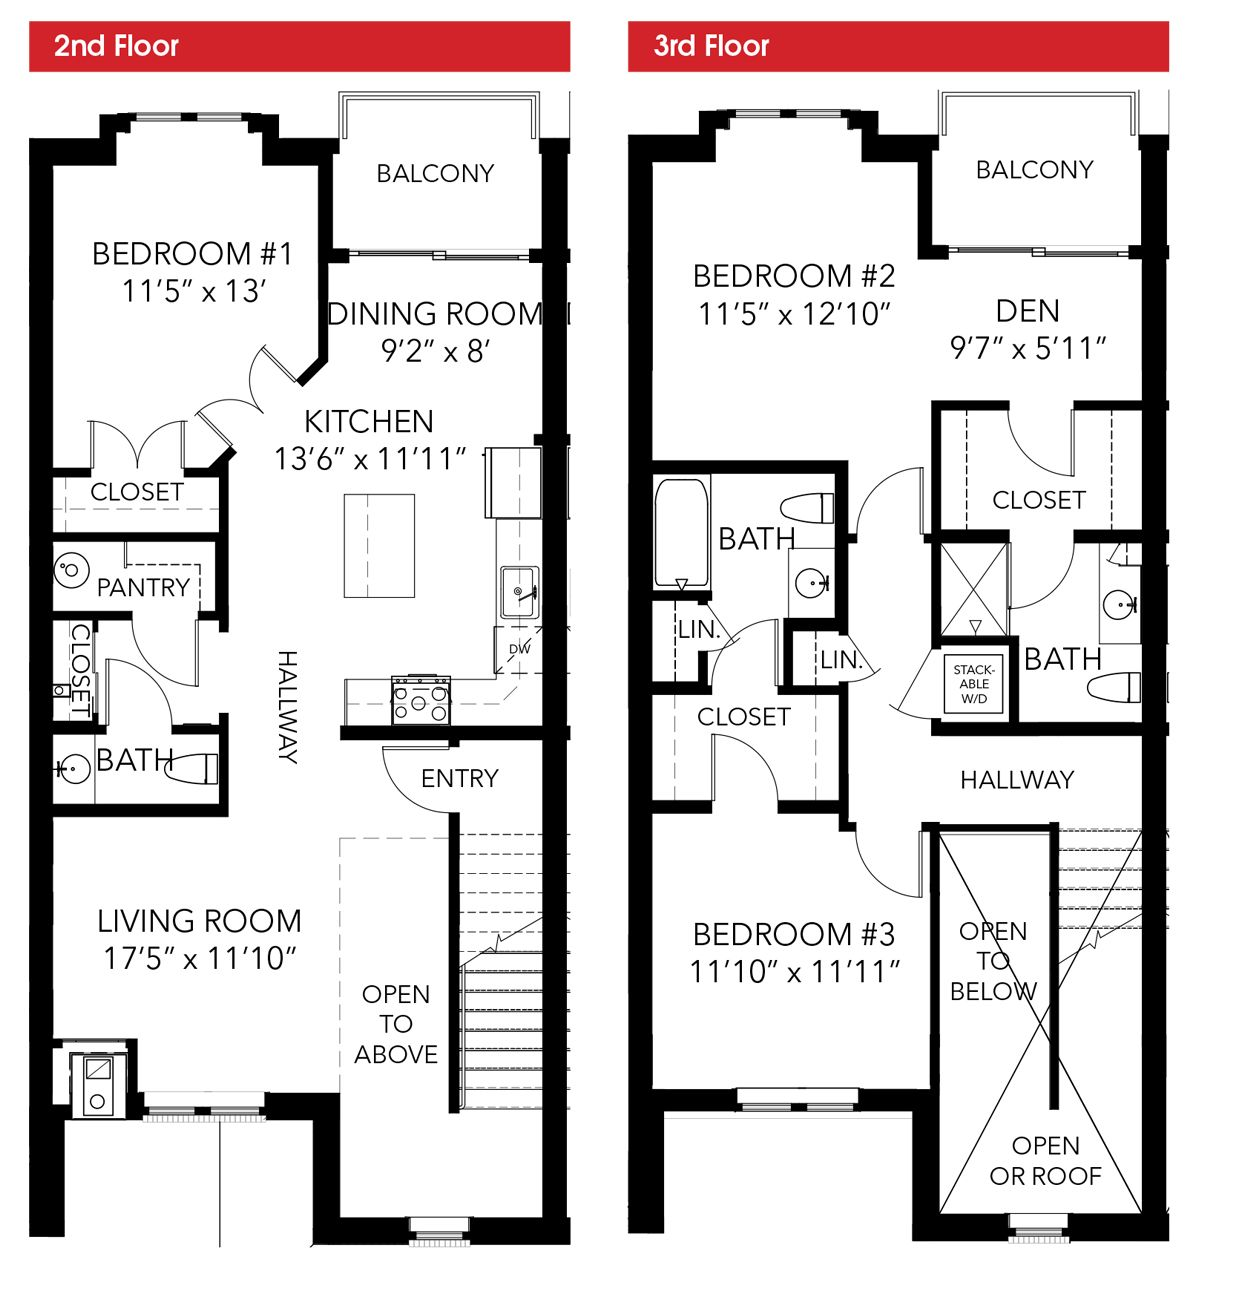 Oakbourne floor plan 3 bedroom 2 story leed certified for Duplex plans 3 bedroom